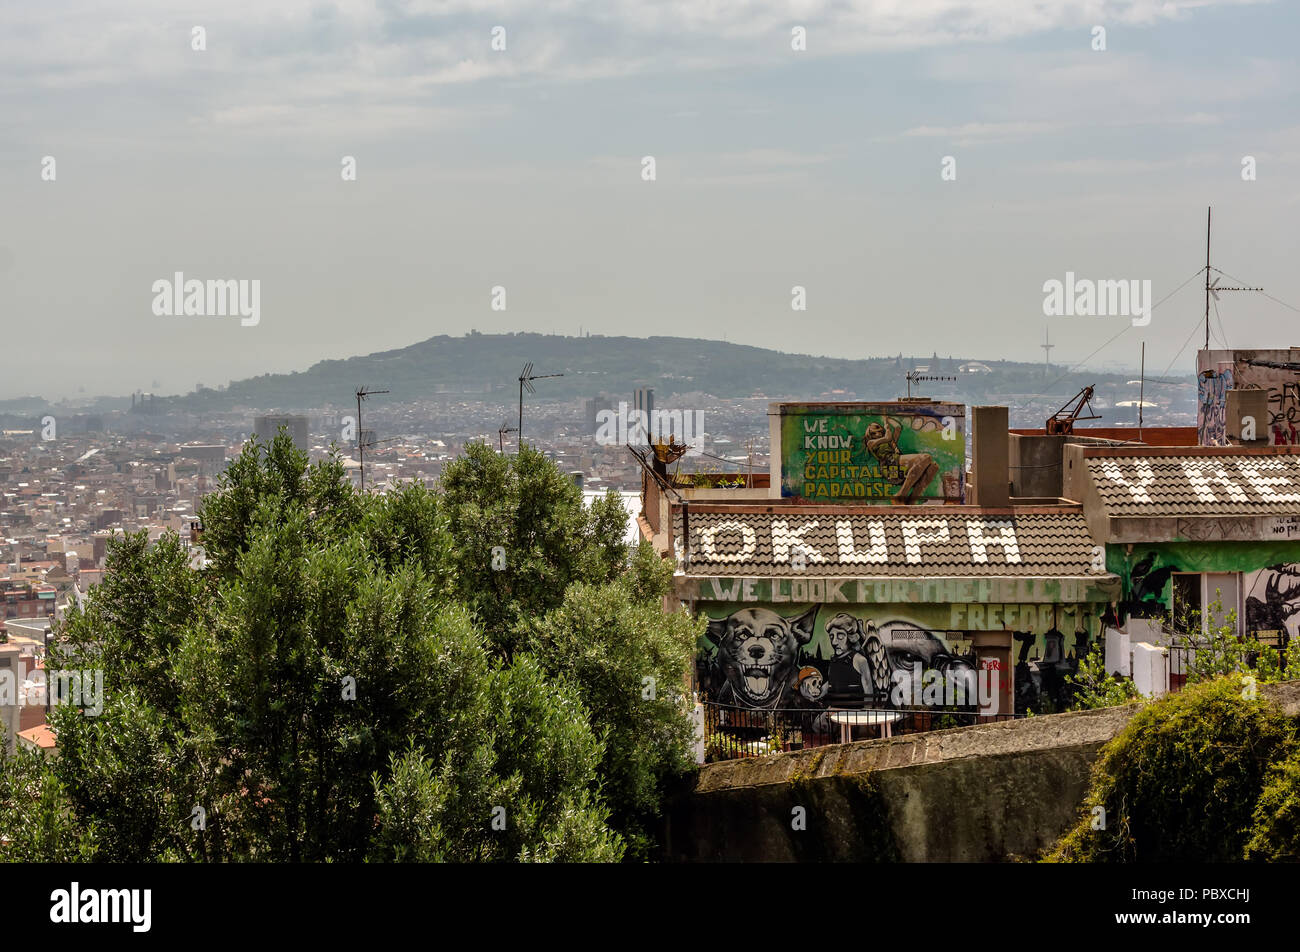 View to the squatted social center roof from Park Guell. Roof sign 'Okupa y Resiste' means' 'Squat & Resist'. - Stock Image